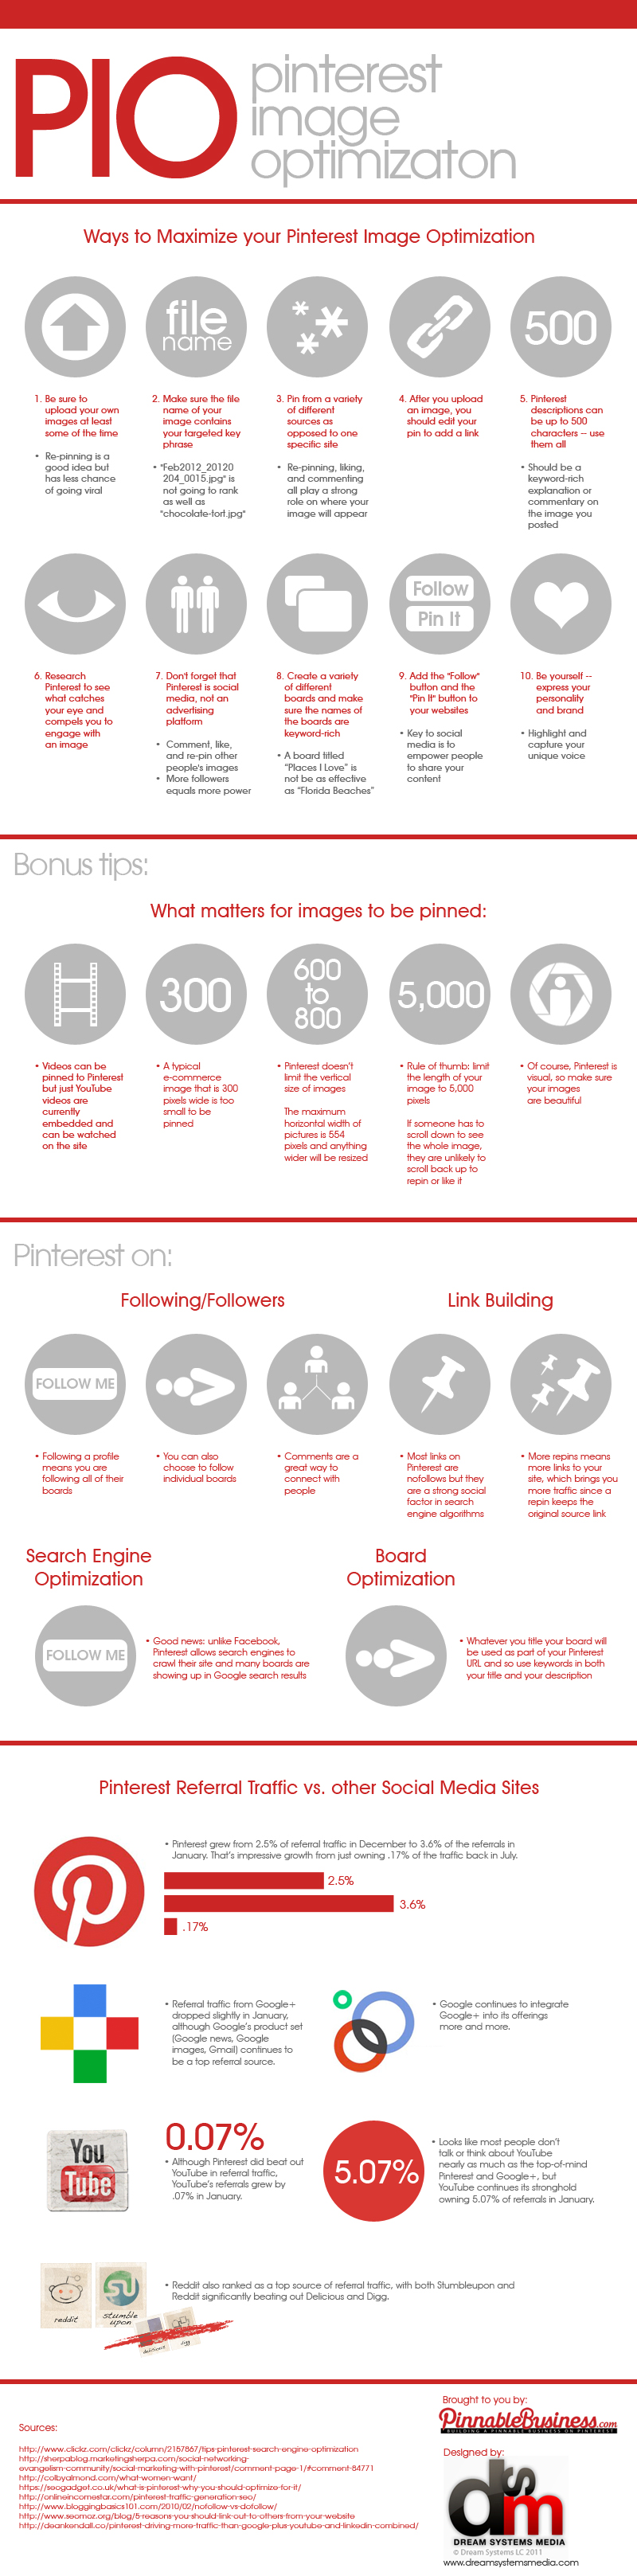 Infographic: Pinterest Image Optimization image pinterest image optimization guide 1